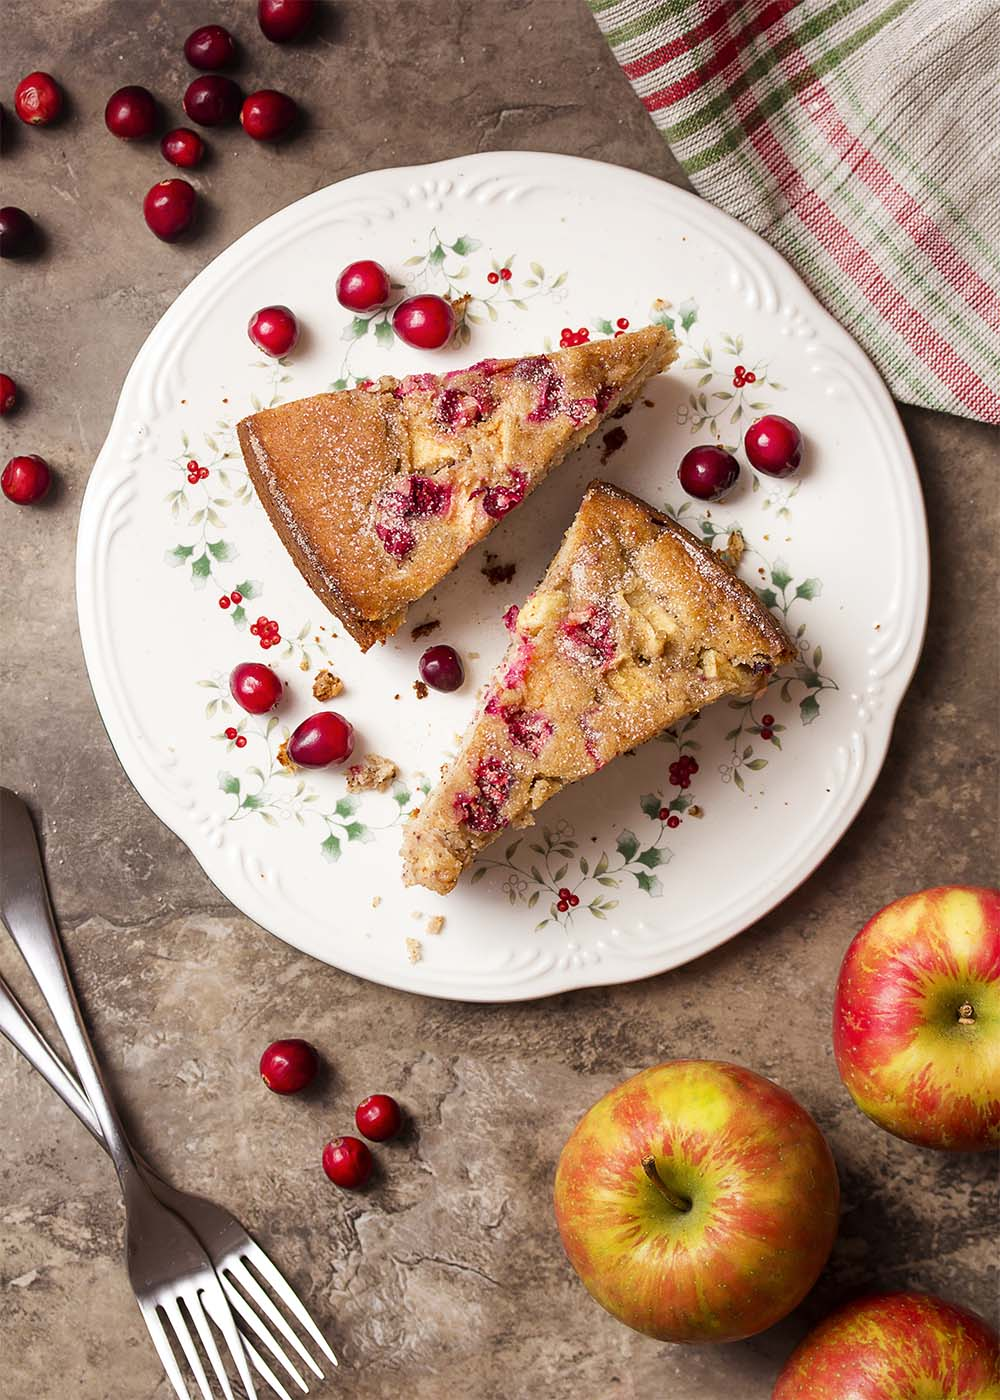 Top view of a serving plate with two slices of cranberry apple cake. Two forks on the table. Fresh cranberries and apples scattered about.